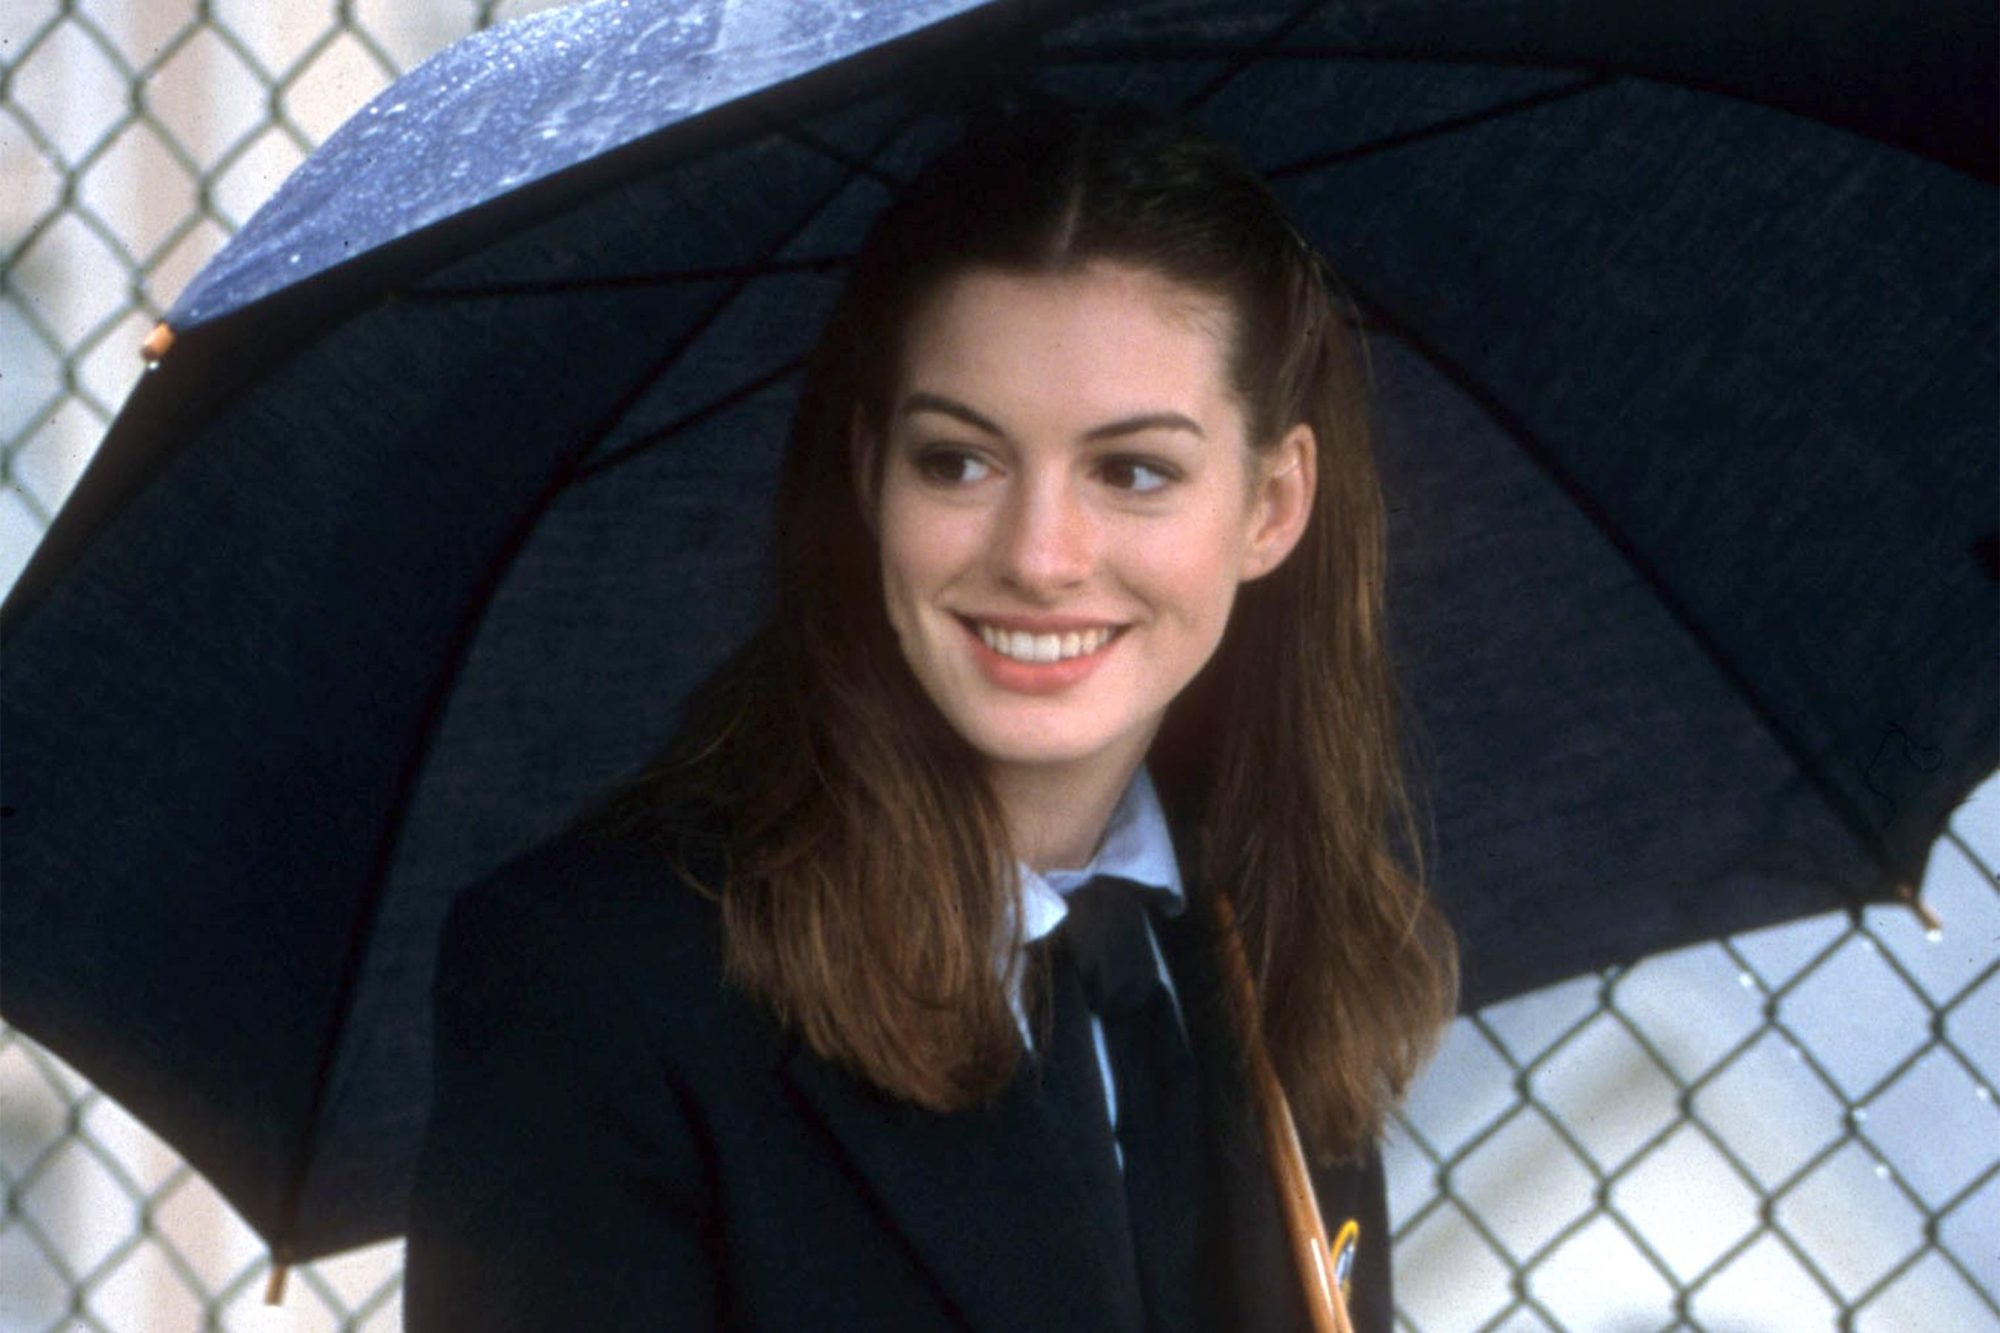 Mia Thermopolis (The Princess Diaries, 2001)